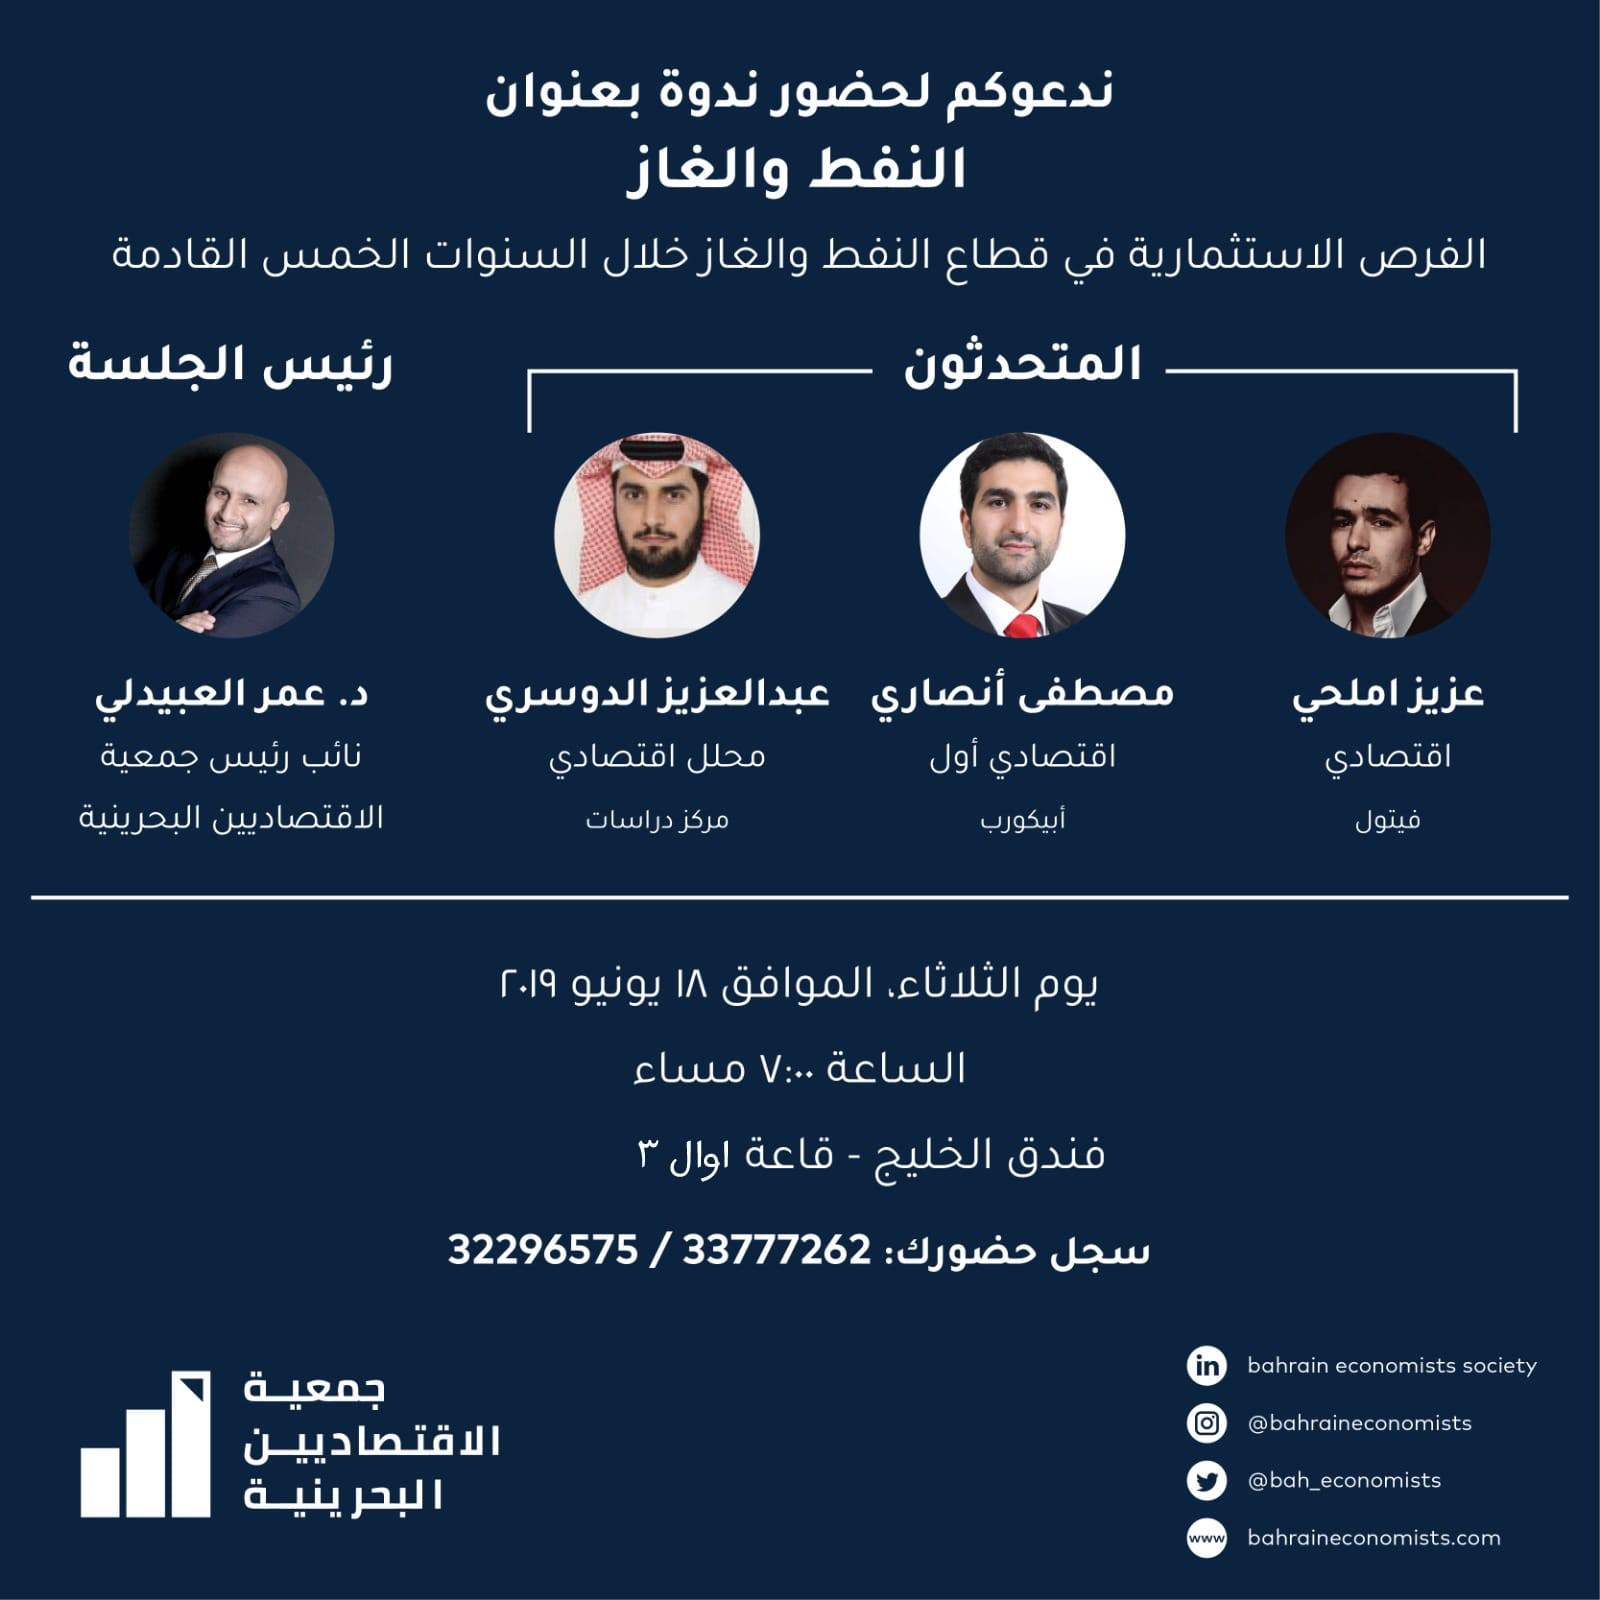 """Economists"" organizes a seminar ""Investment opportunities in oil and gas"""